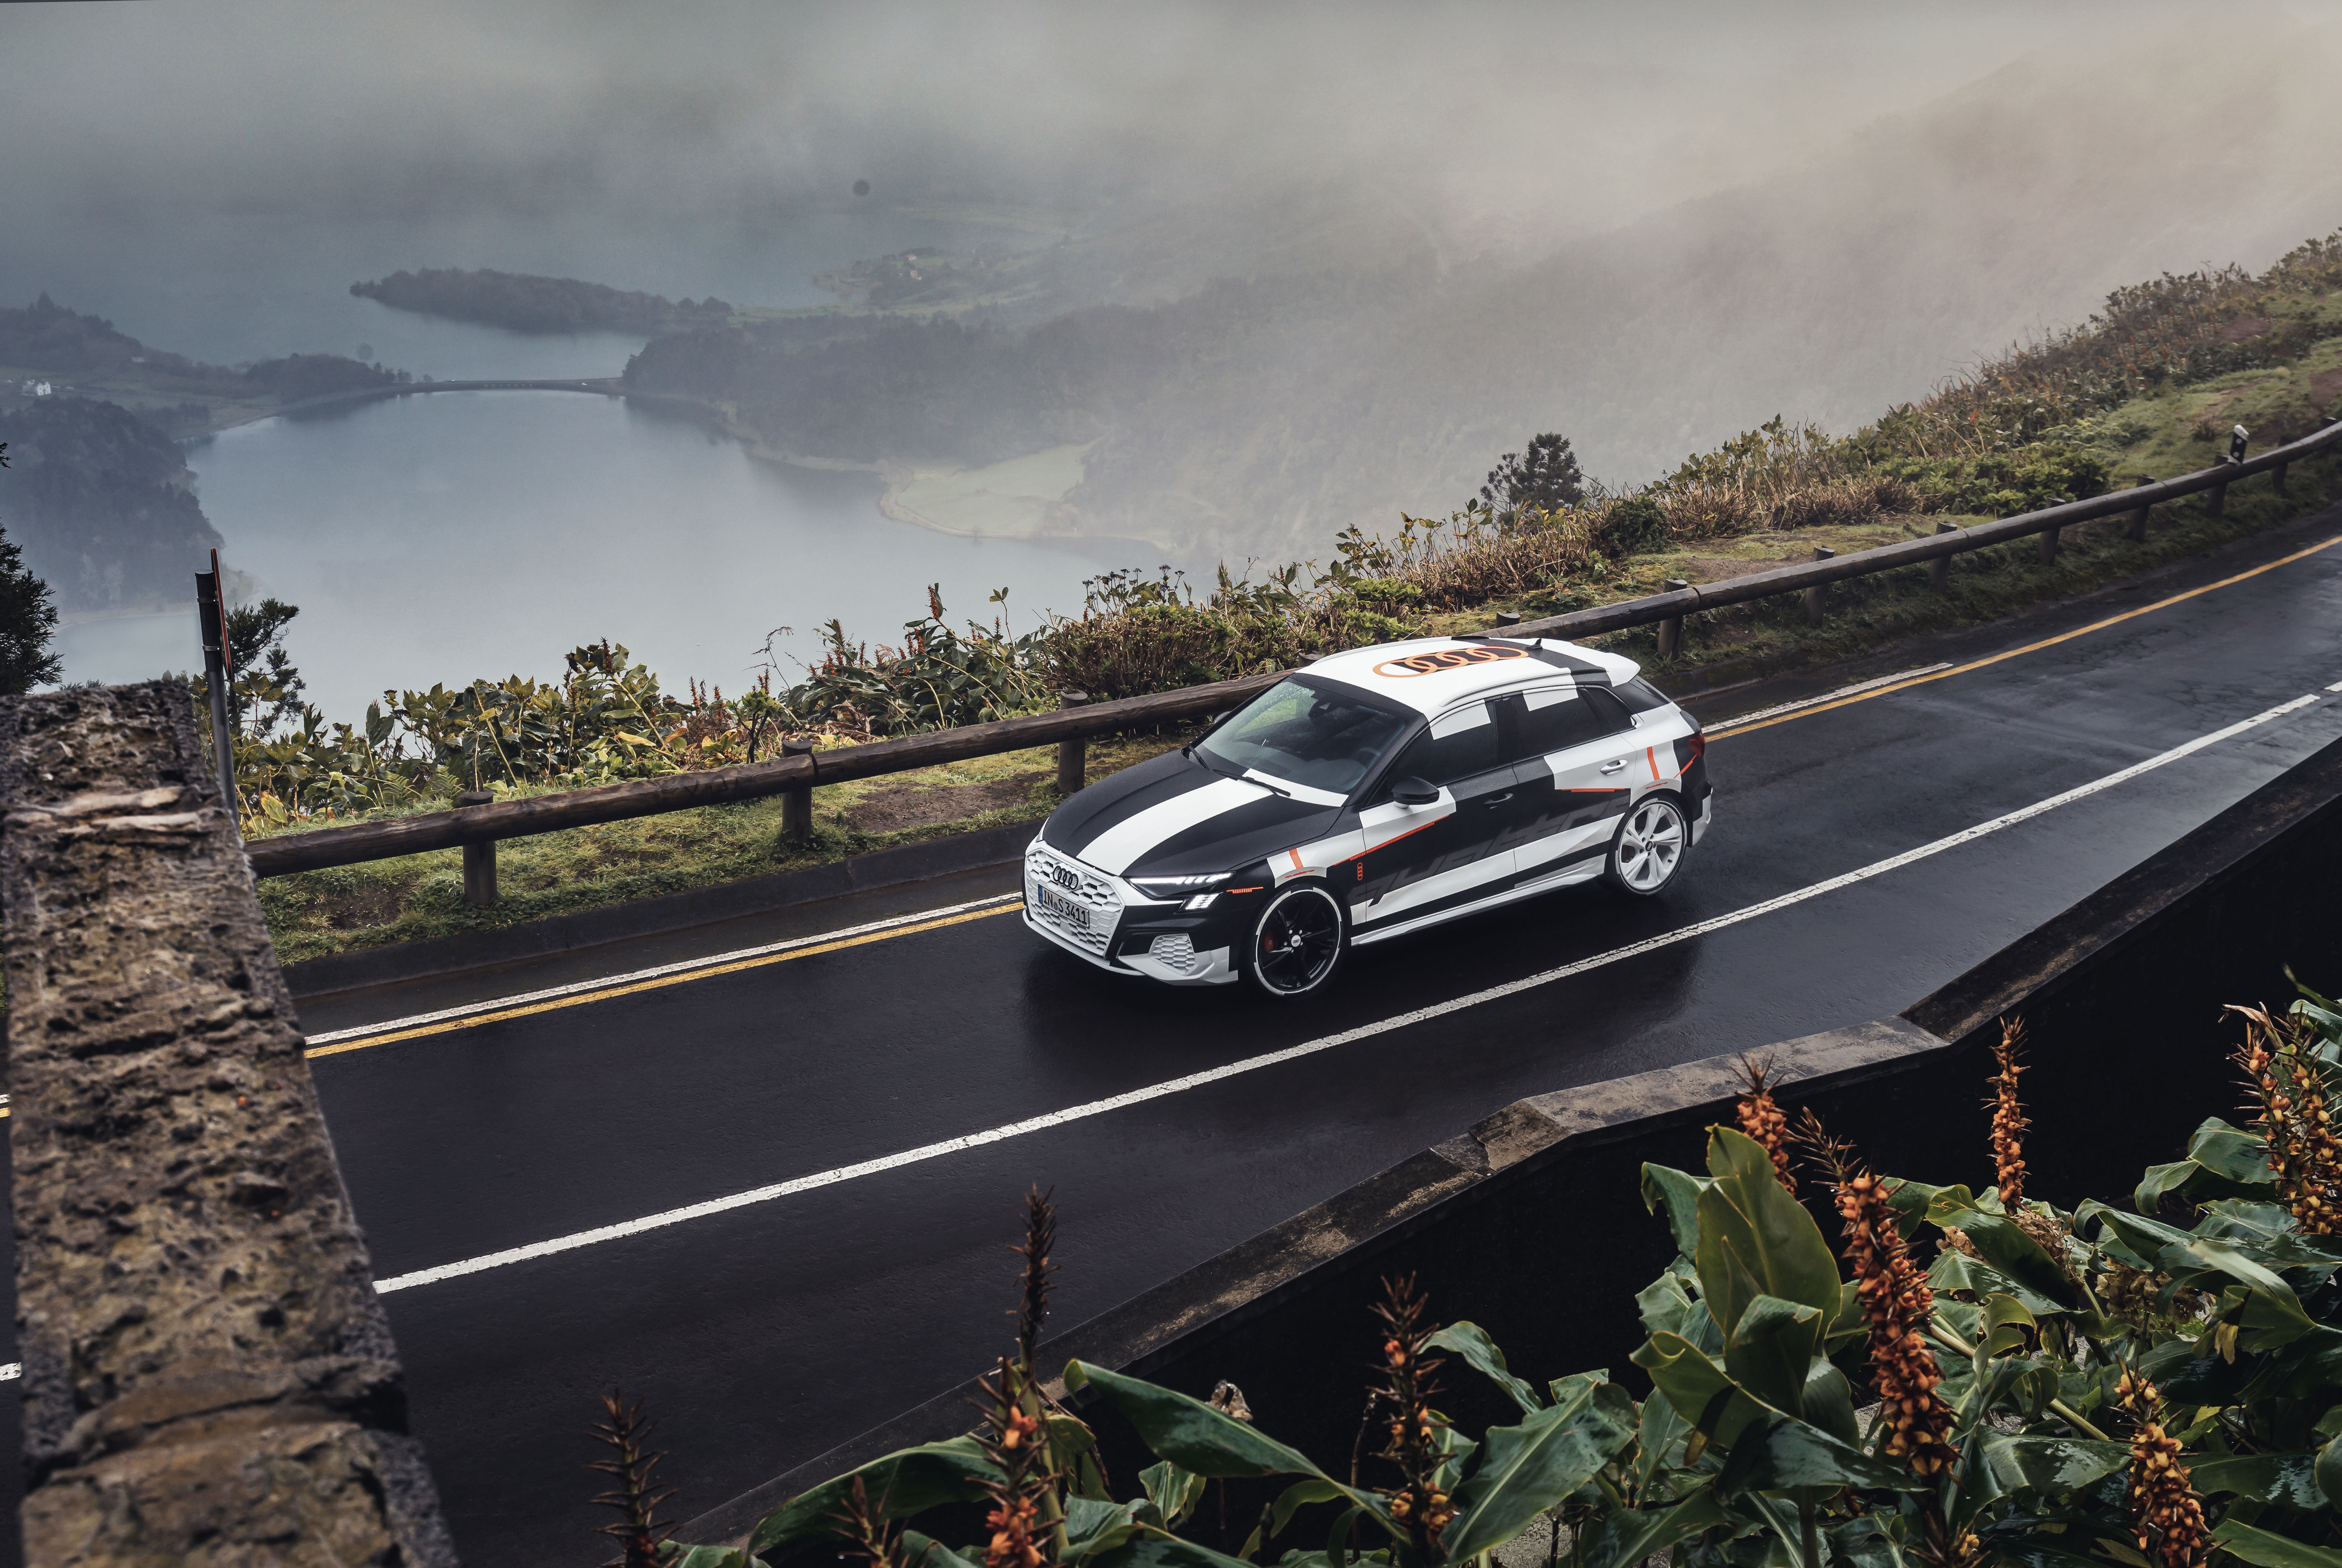 The progressive steering is equipped with a highly efficient electromechanical drive that outputs power only when it is needed. It works together closely with various assist systems, such as the adaptive cruise assist, the collision avoidance assist, and the park assist.